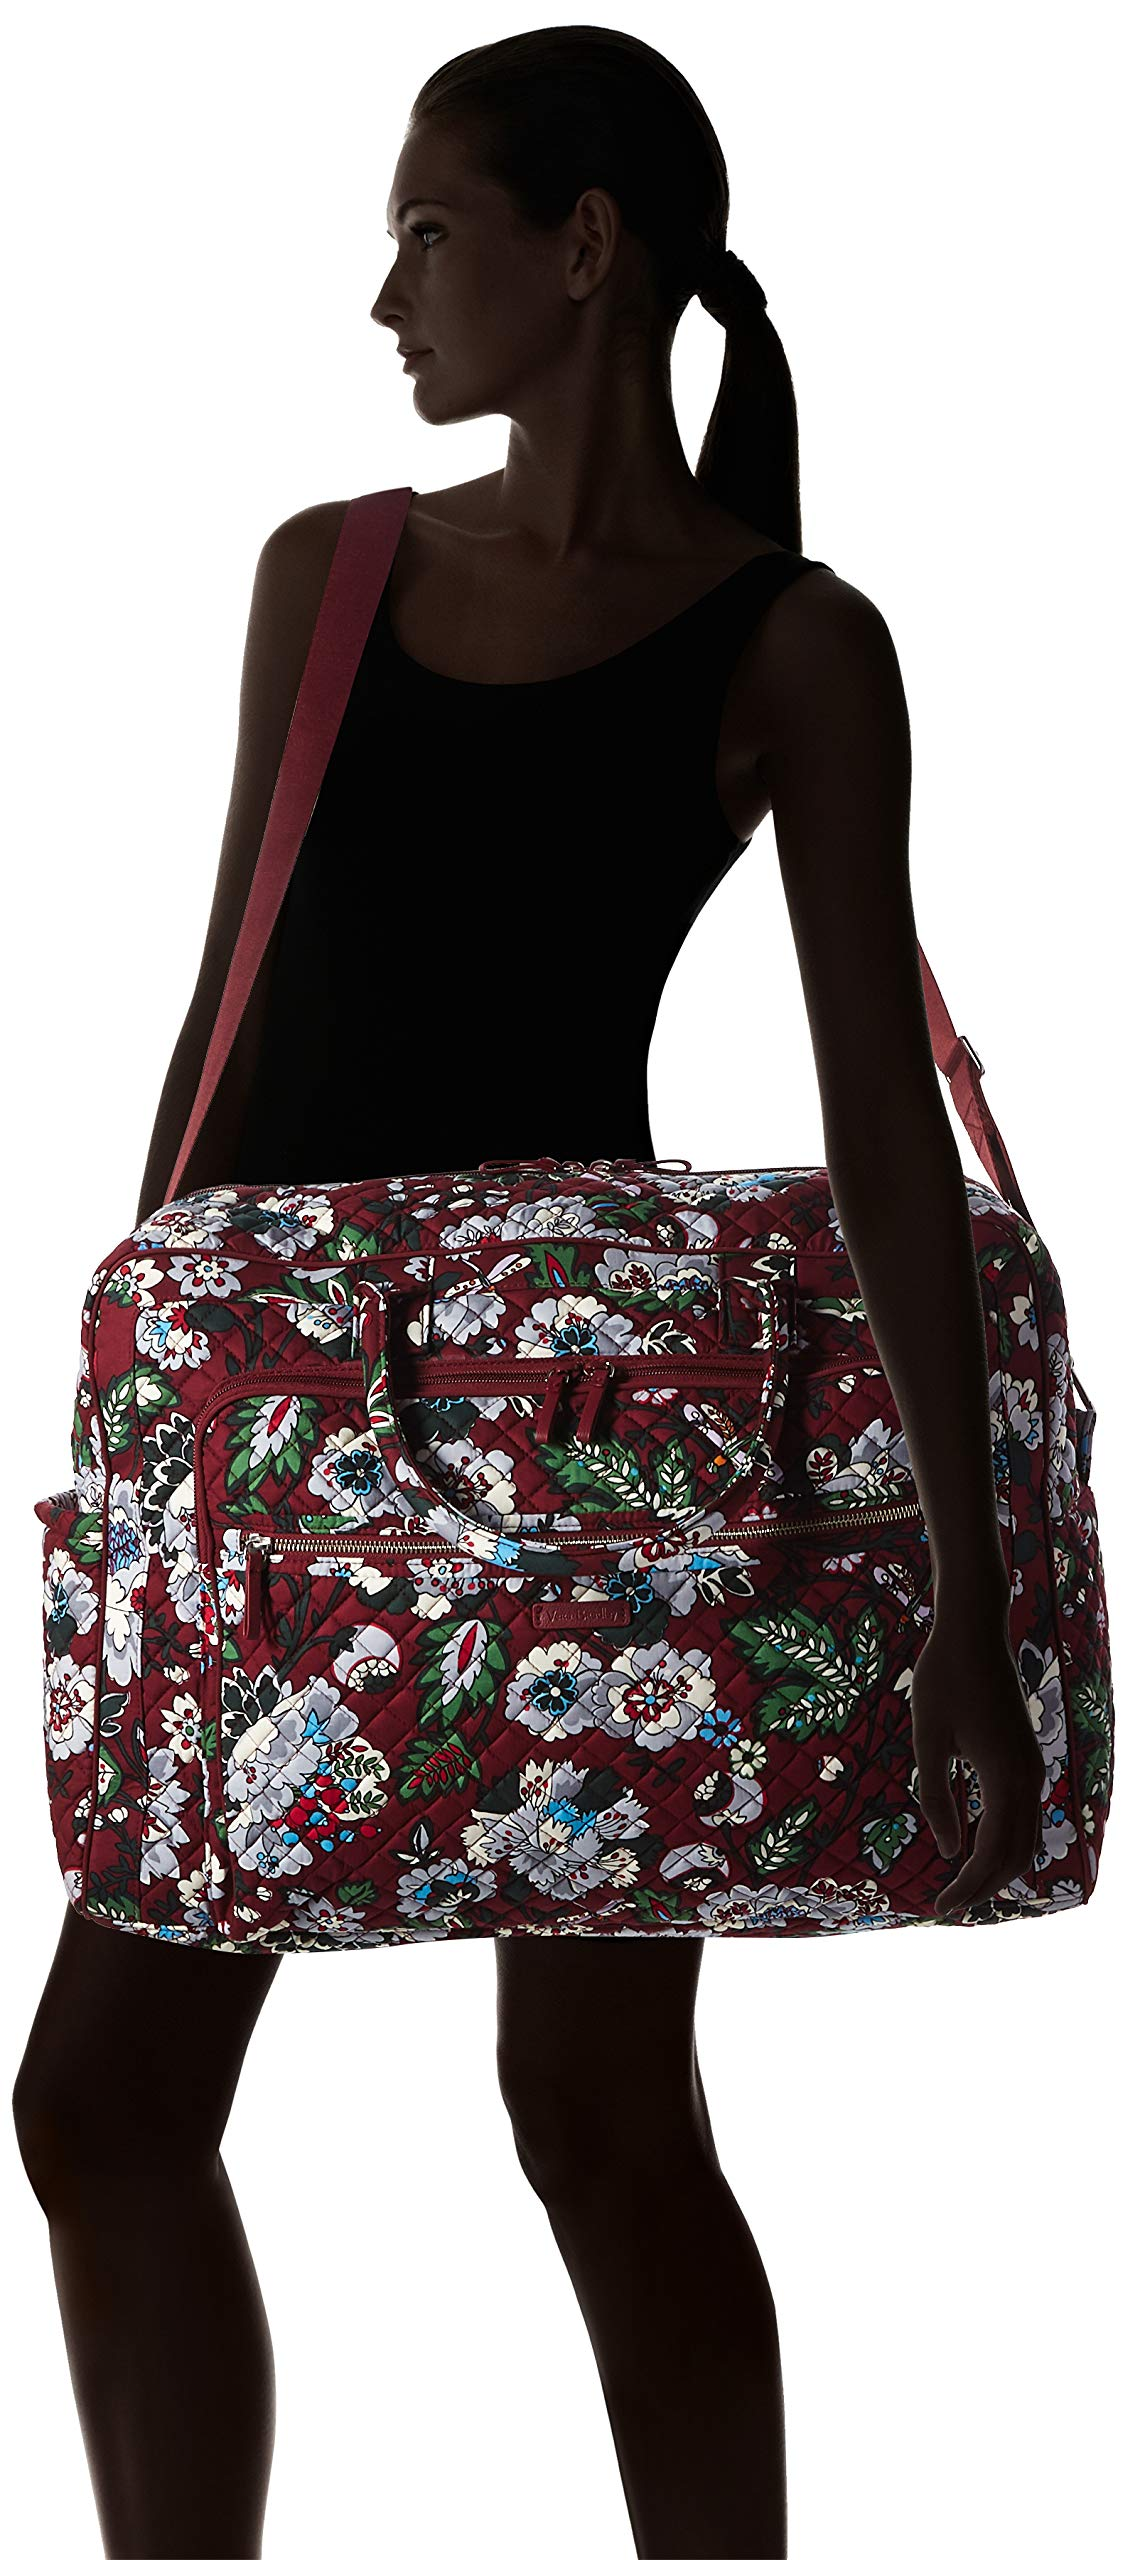 Vera Bradley Iconic Grand Weekender Travel Bag, Signature Cotton, bordeaux blooms by Vera Bradley (Image #9)